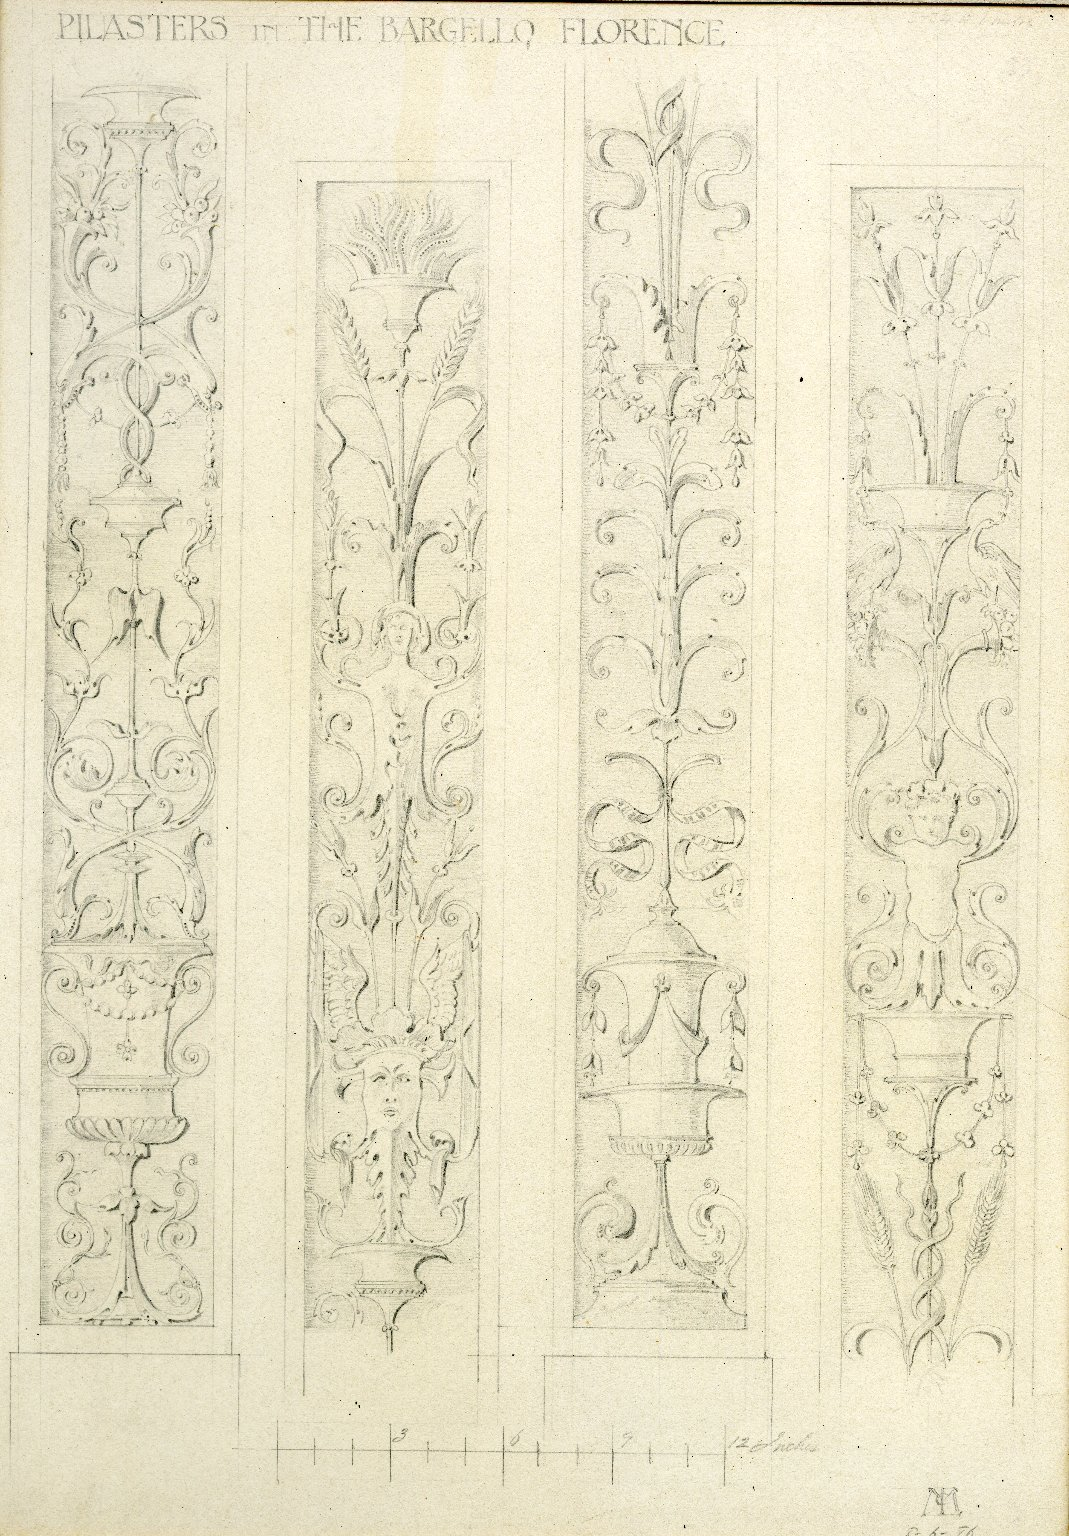 Four pilasters in the Bargello